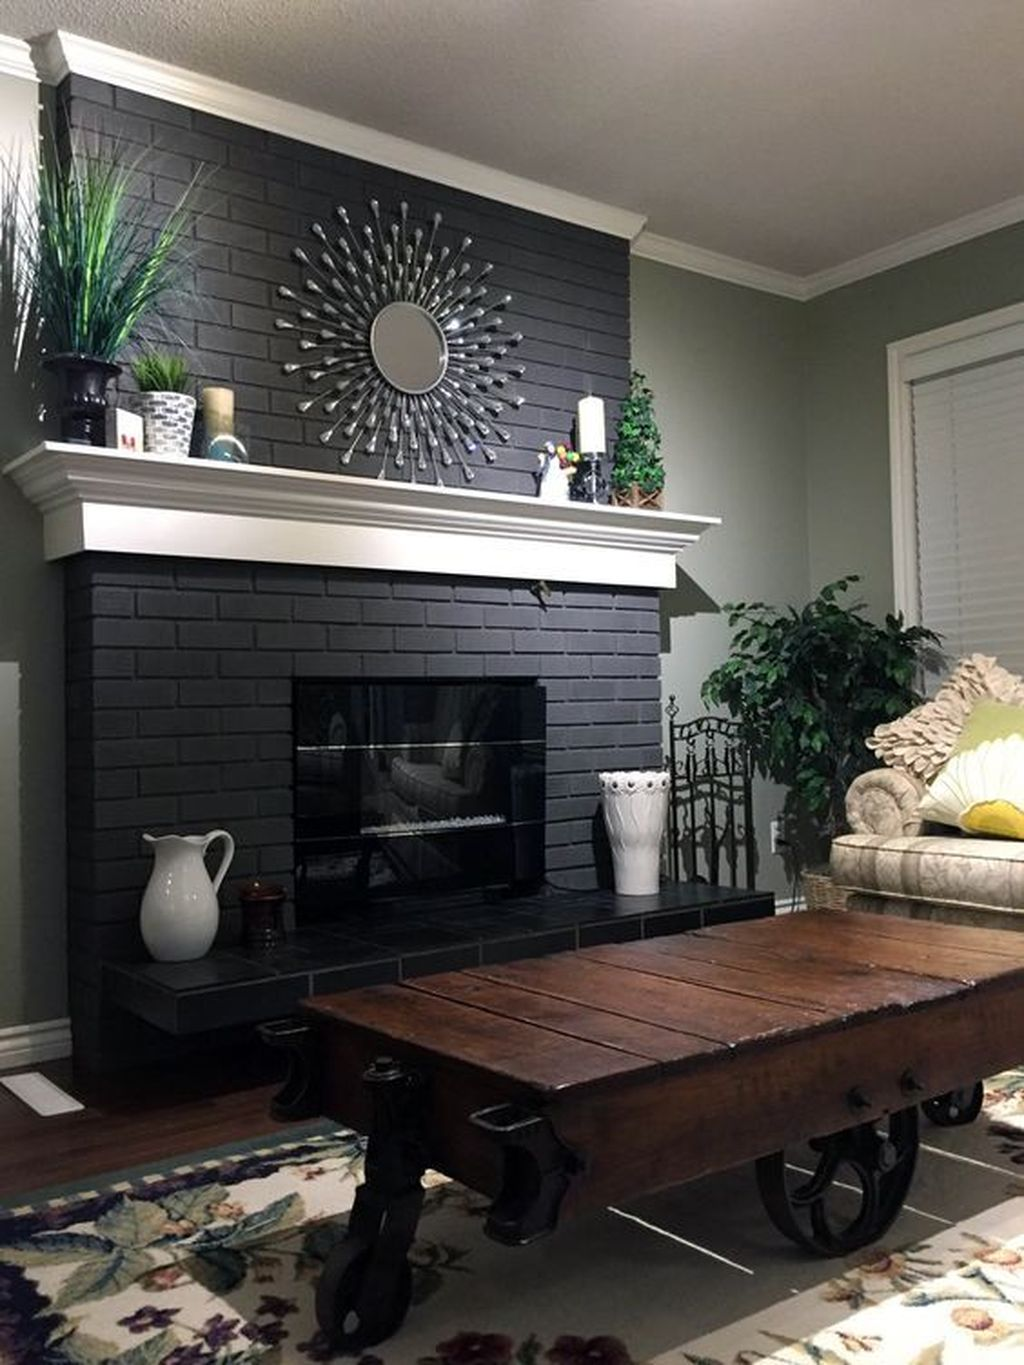 Awesome Living Room Design Ideas With Fireplace 15